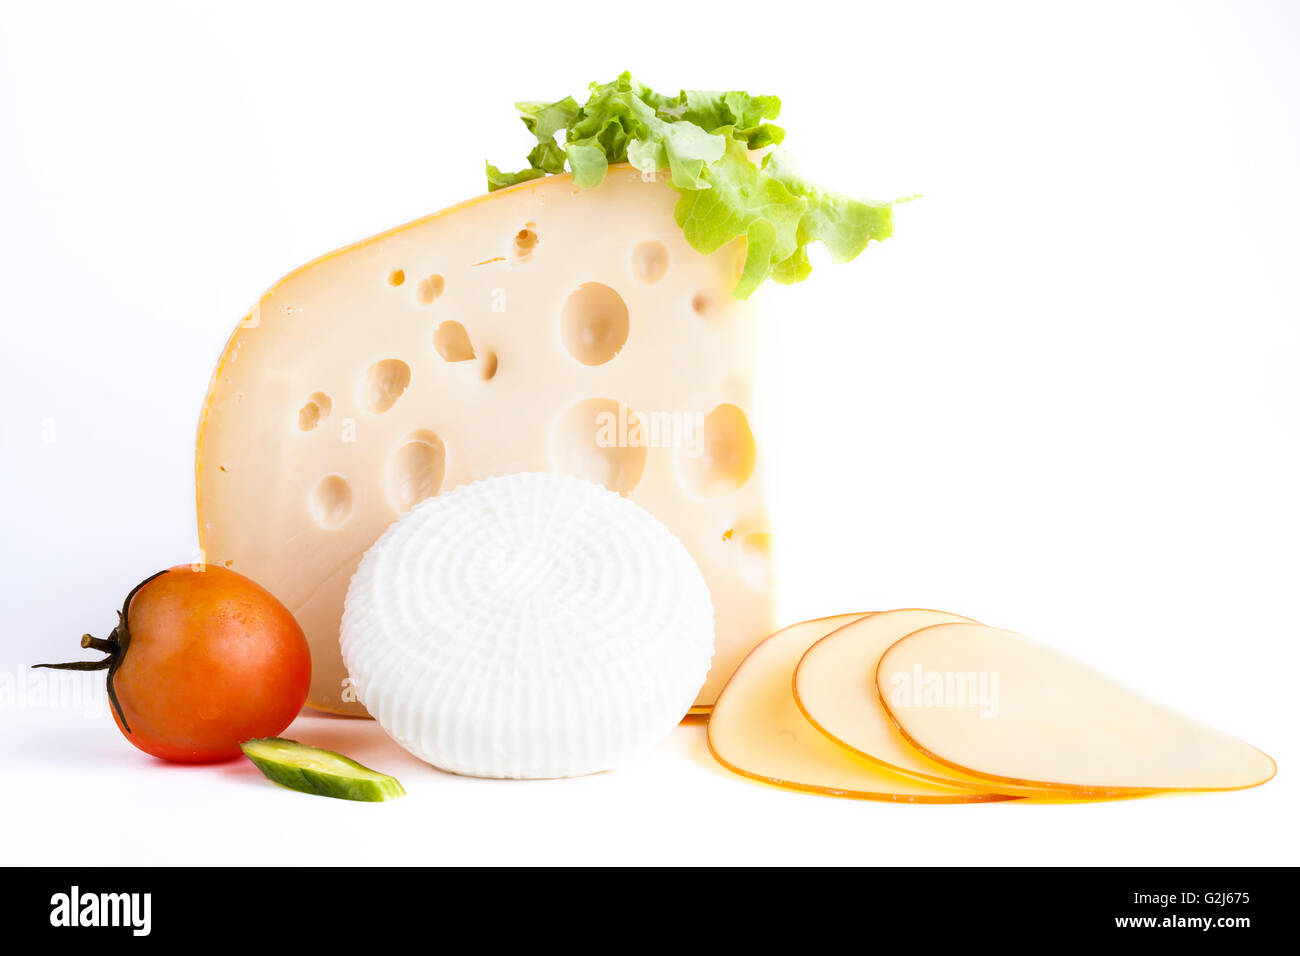 Yellow and white chese with tomato and cheese slices isolajted on white background - Stock Image